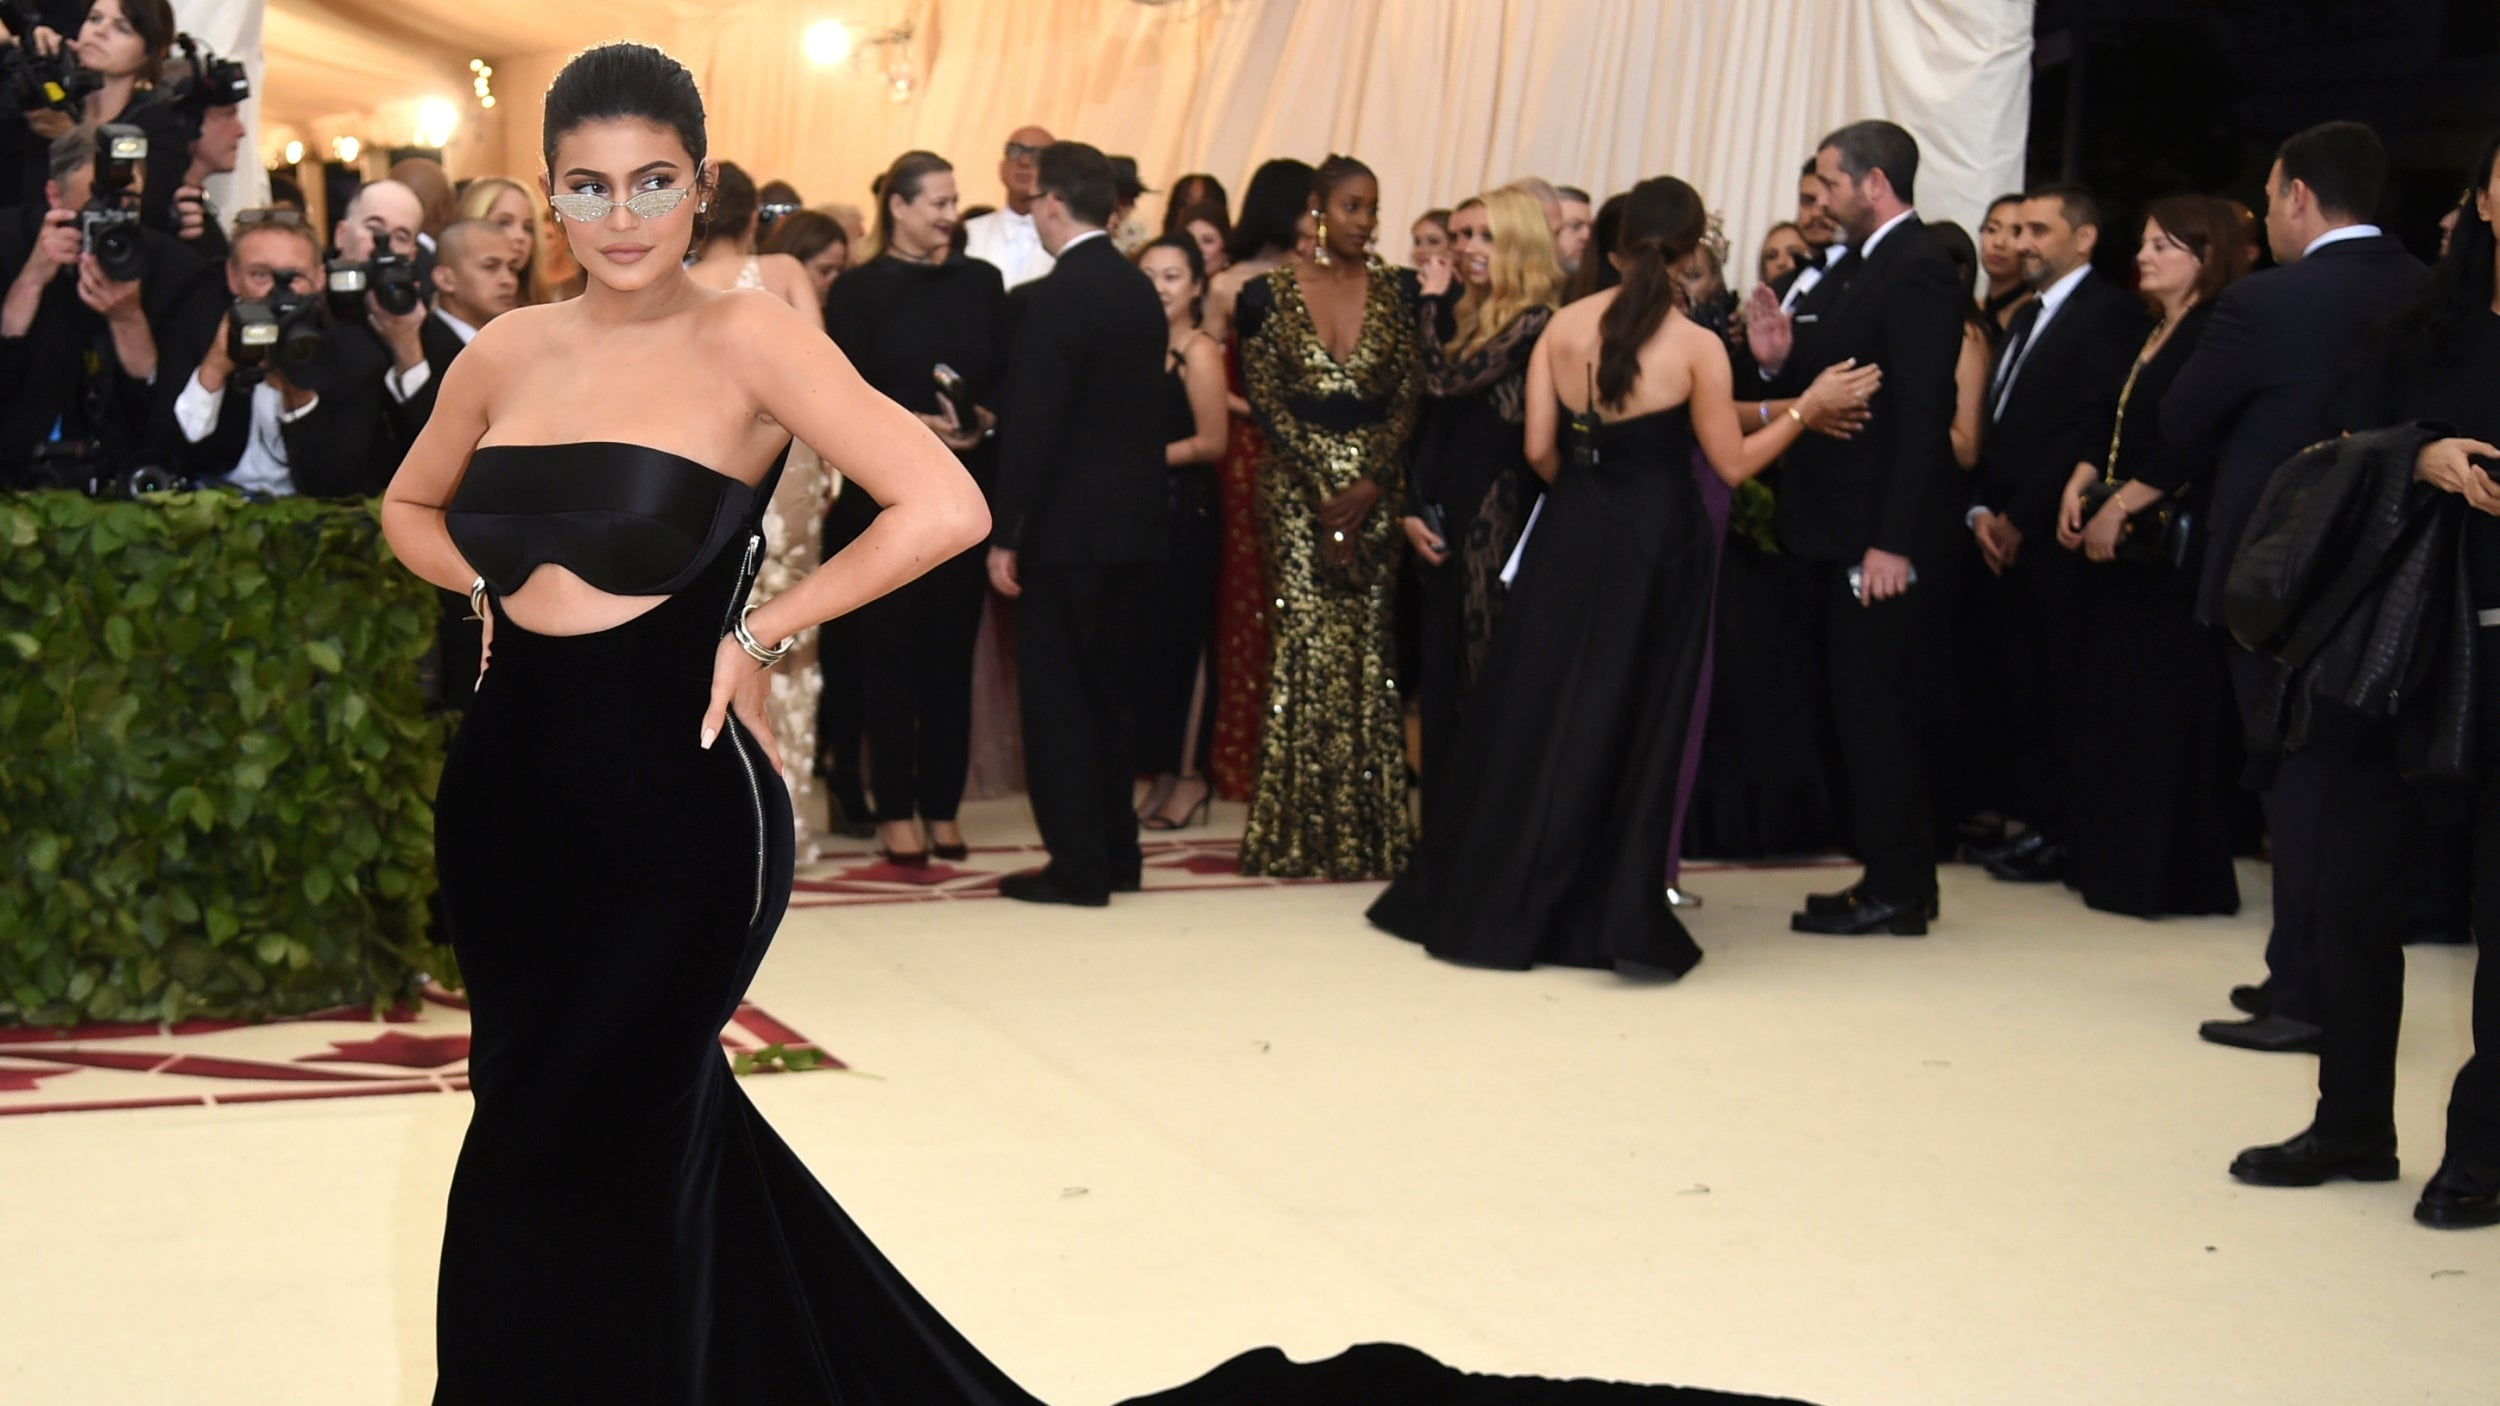 A Tight Squeeze And Emergency Zipper. Kylie Jenner Reveals ...